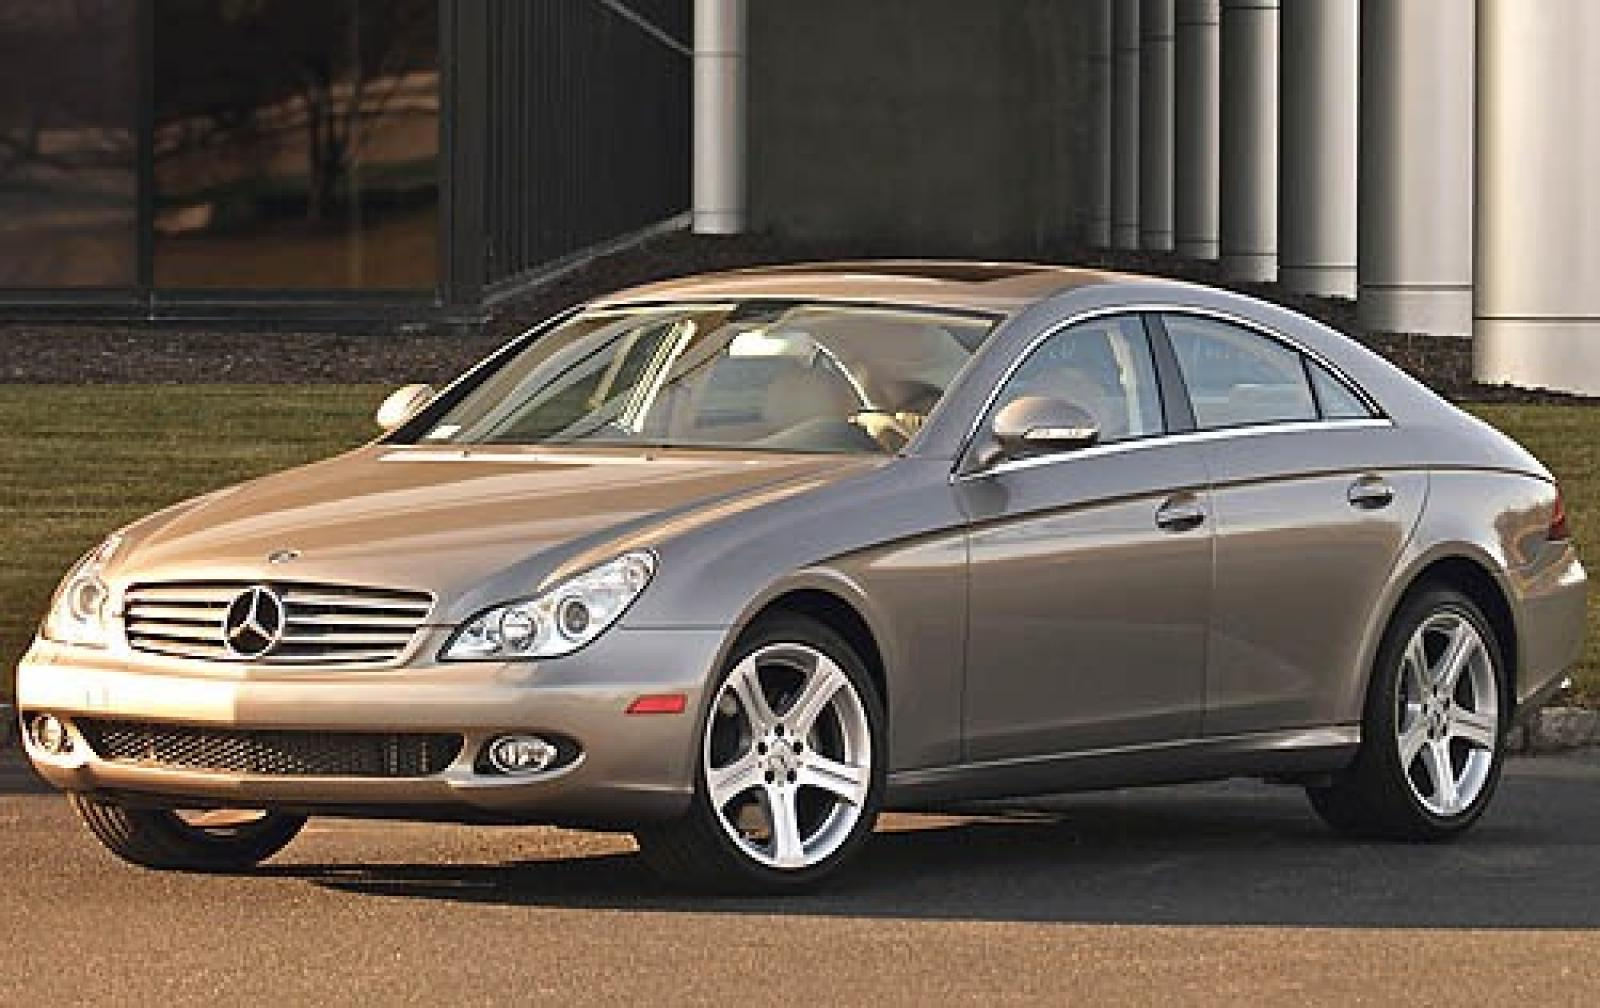 2008 mercedes benz cls class information and photos zombiedrive. Black Bedroom Furniture Sets. Home Design Ideas